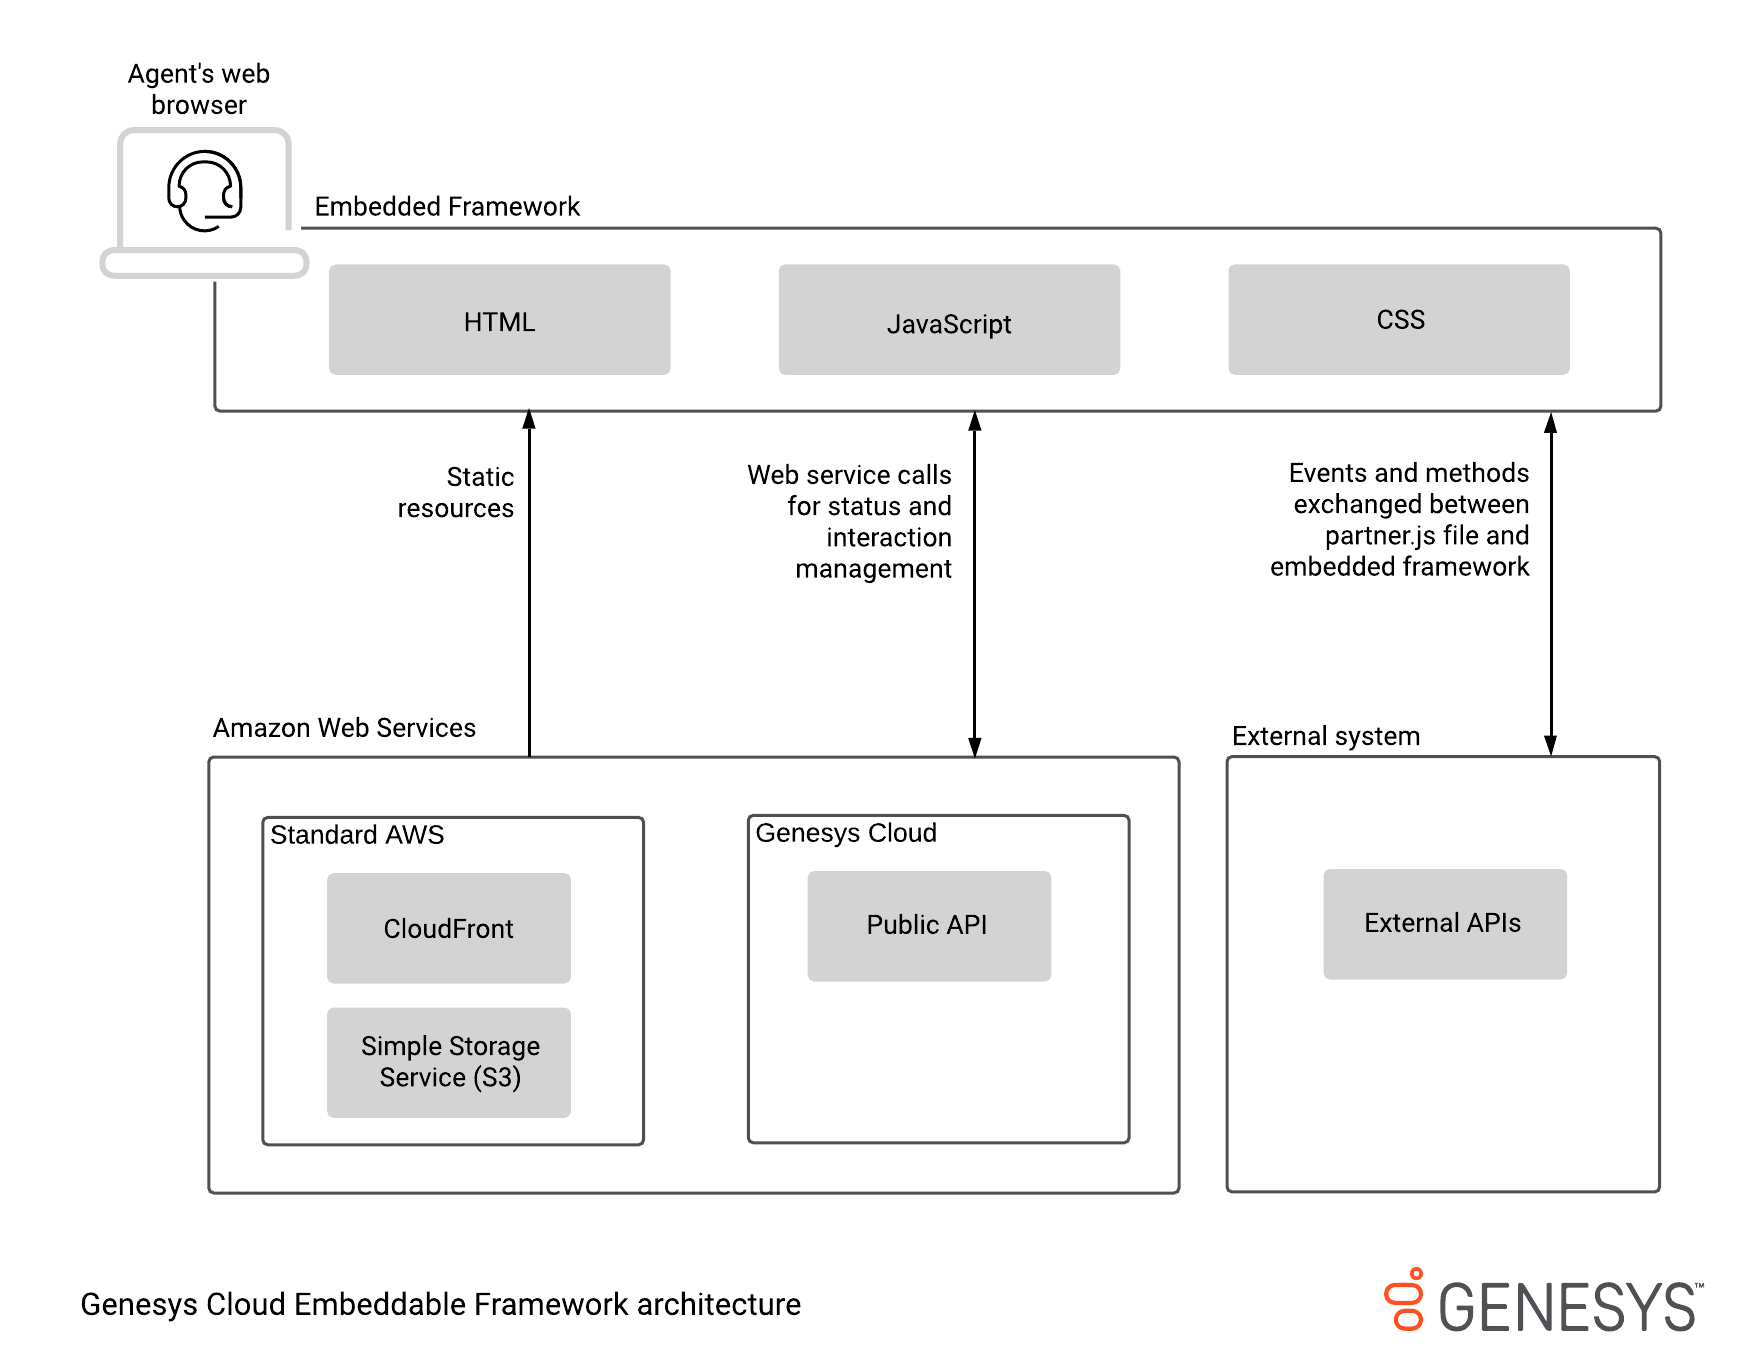 Architecture diagram for Genesys Cloud Embedded Framework